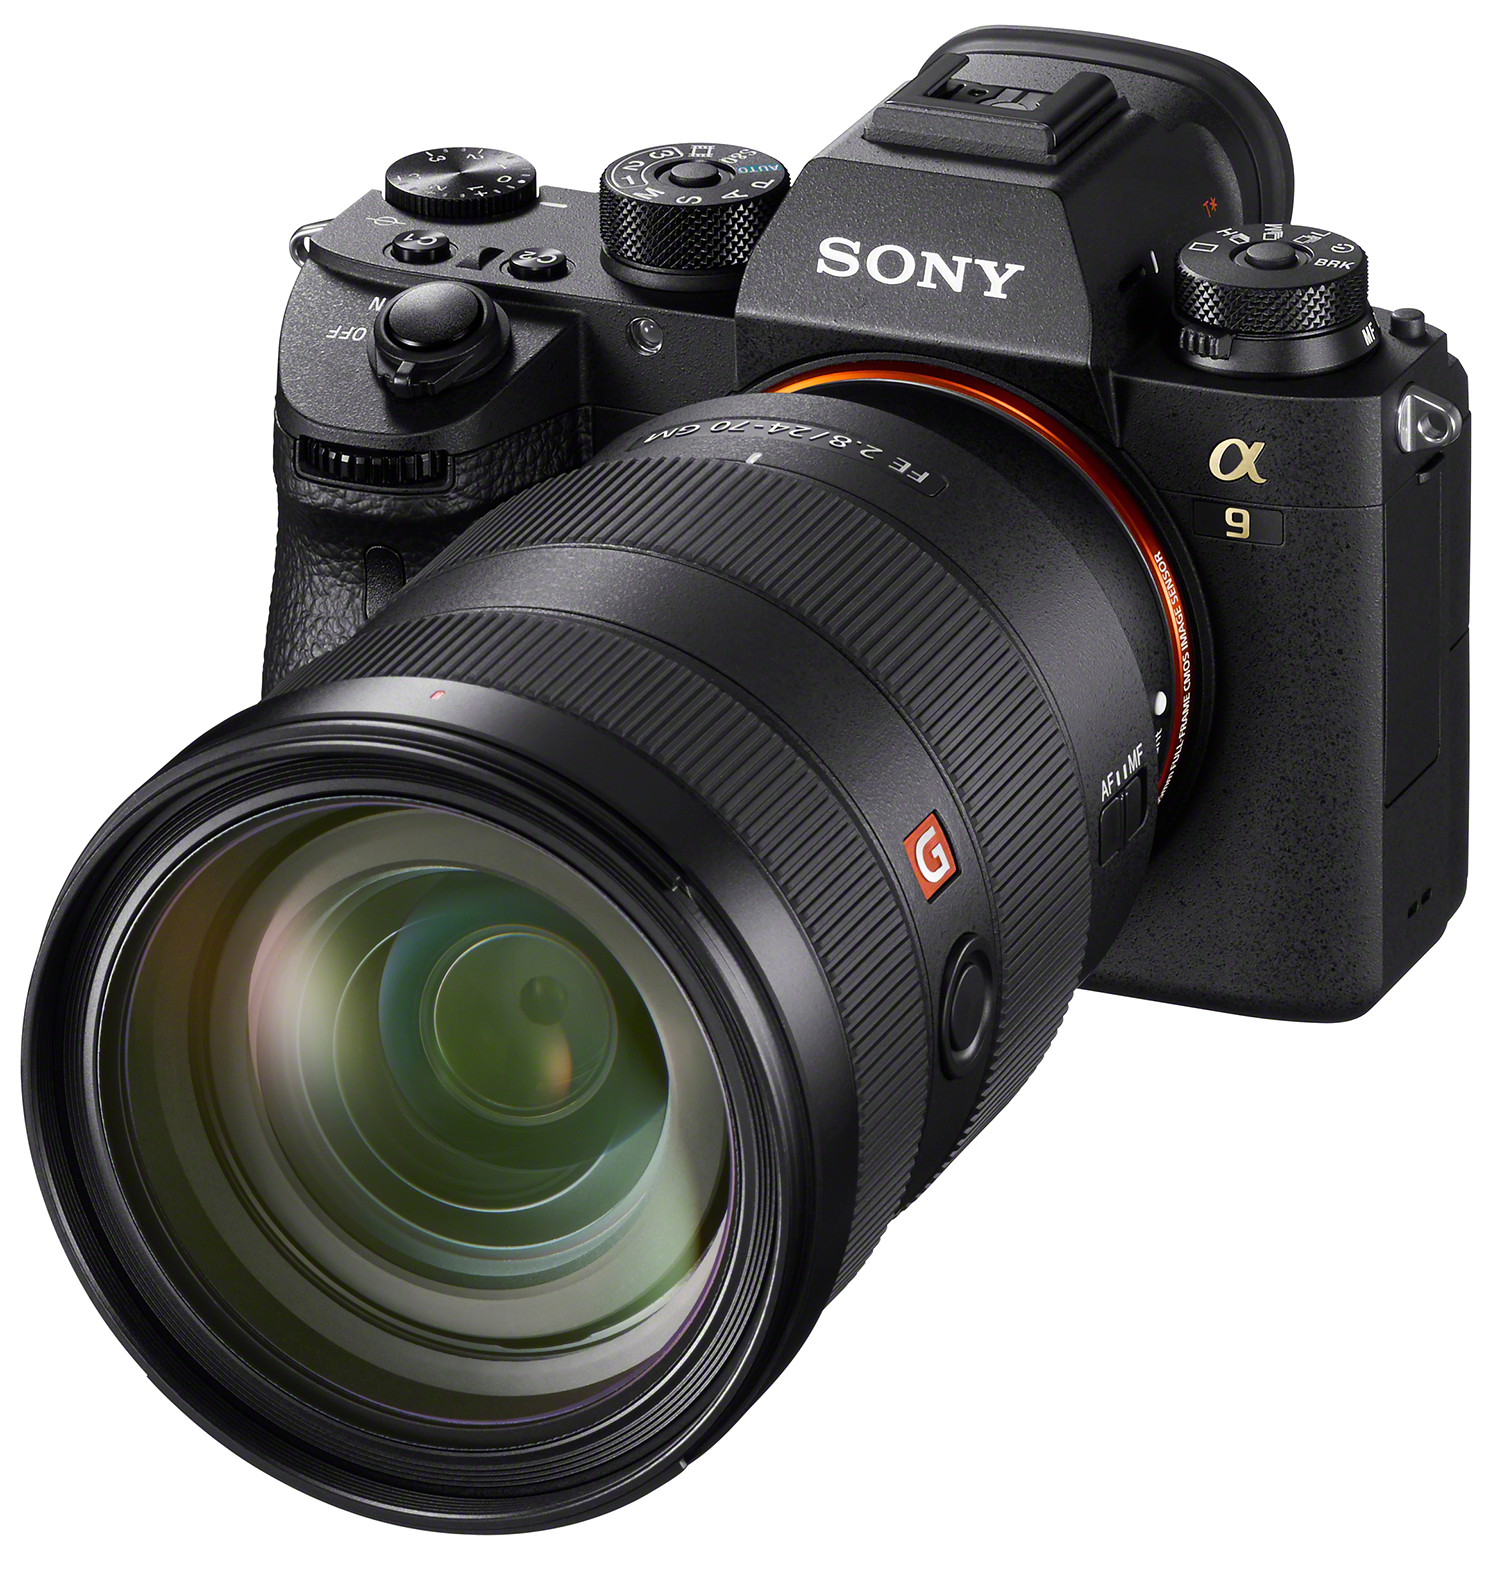 Sony a9 TIPA Awards